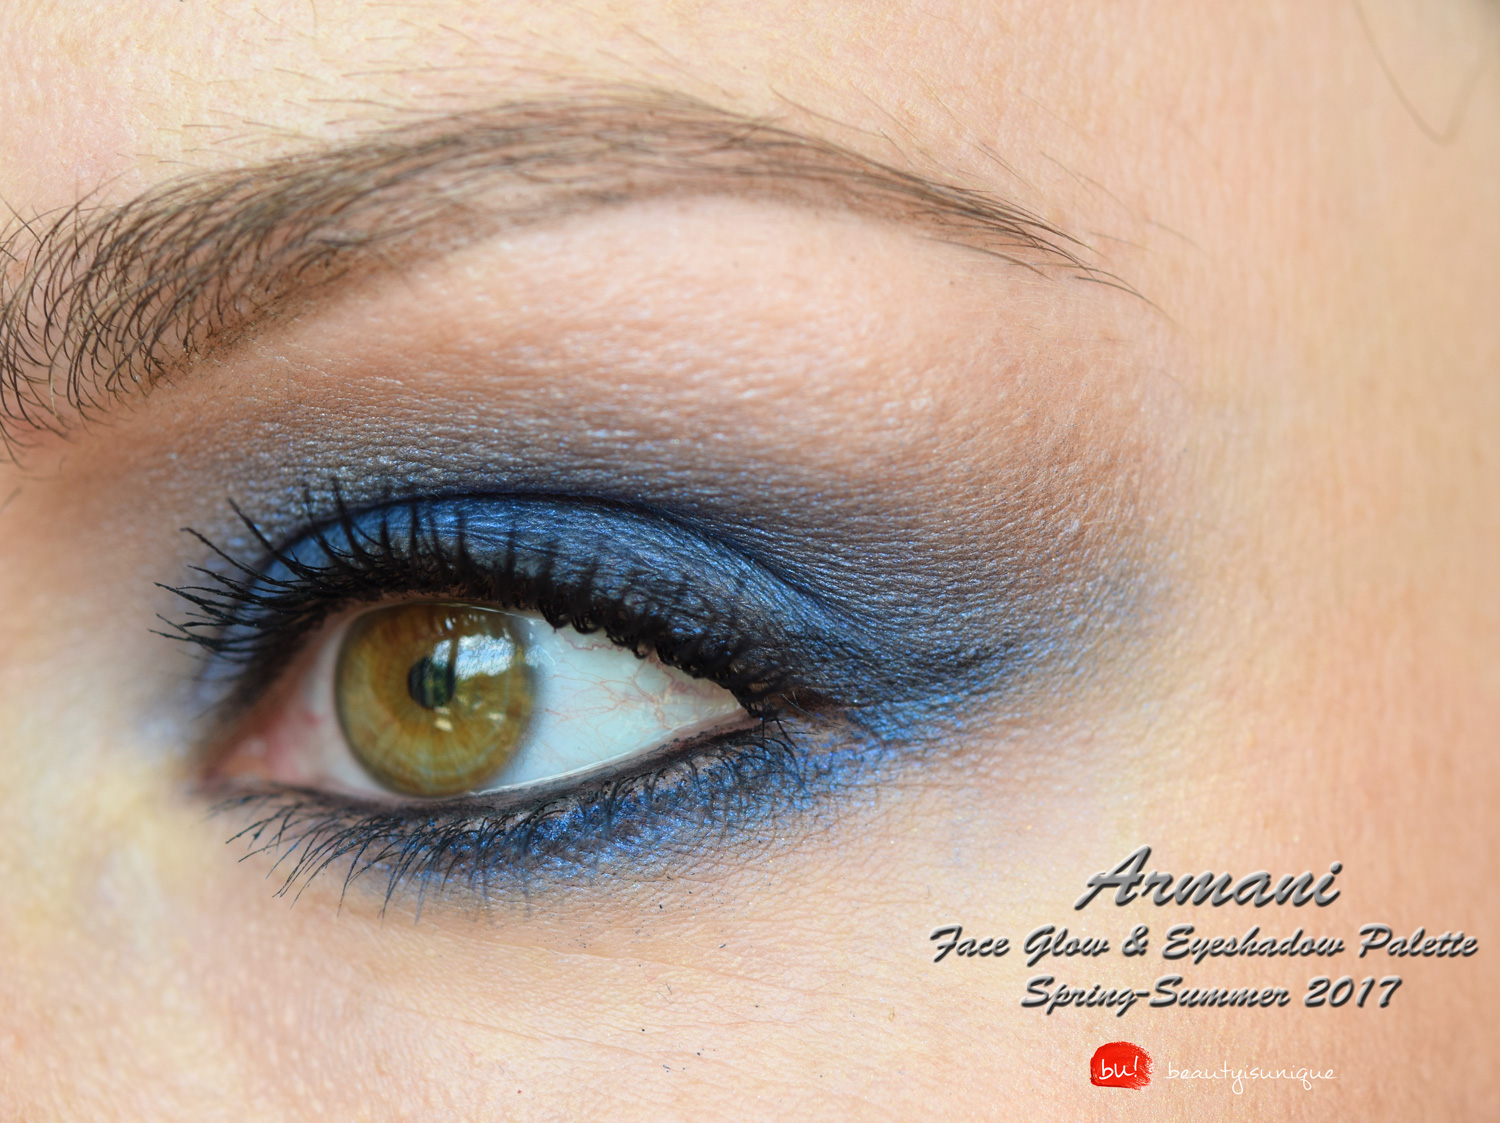 Armani-eye-tint-spring-summer-2017-collection-swatches